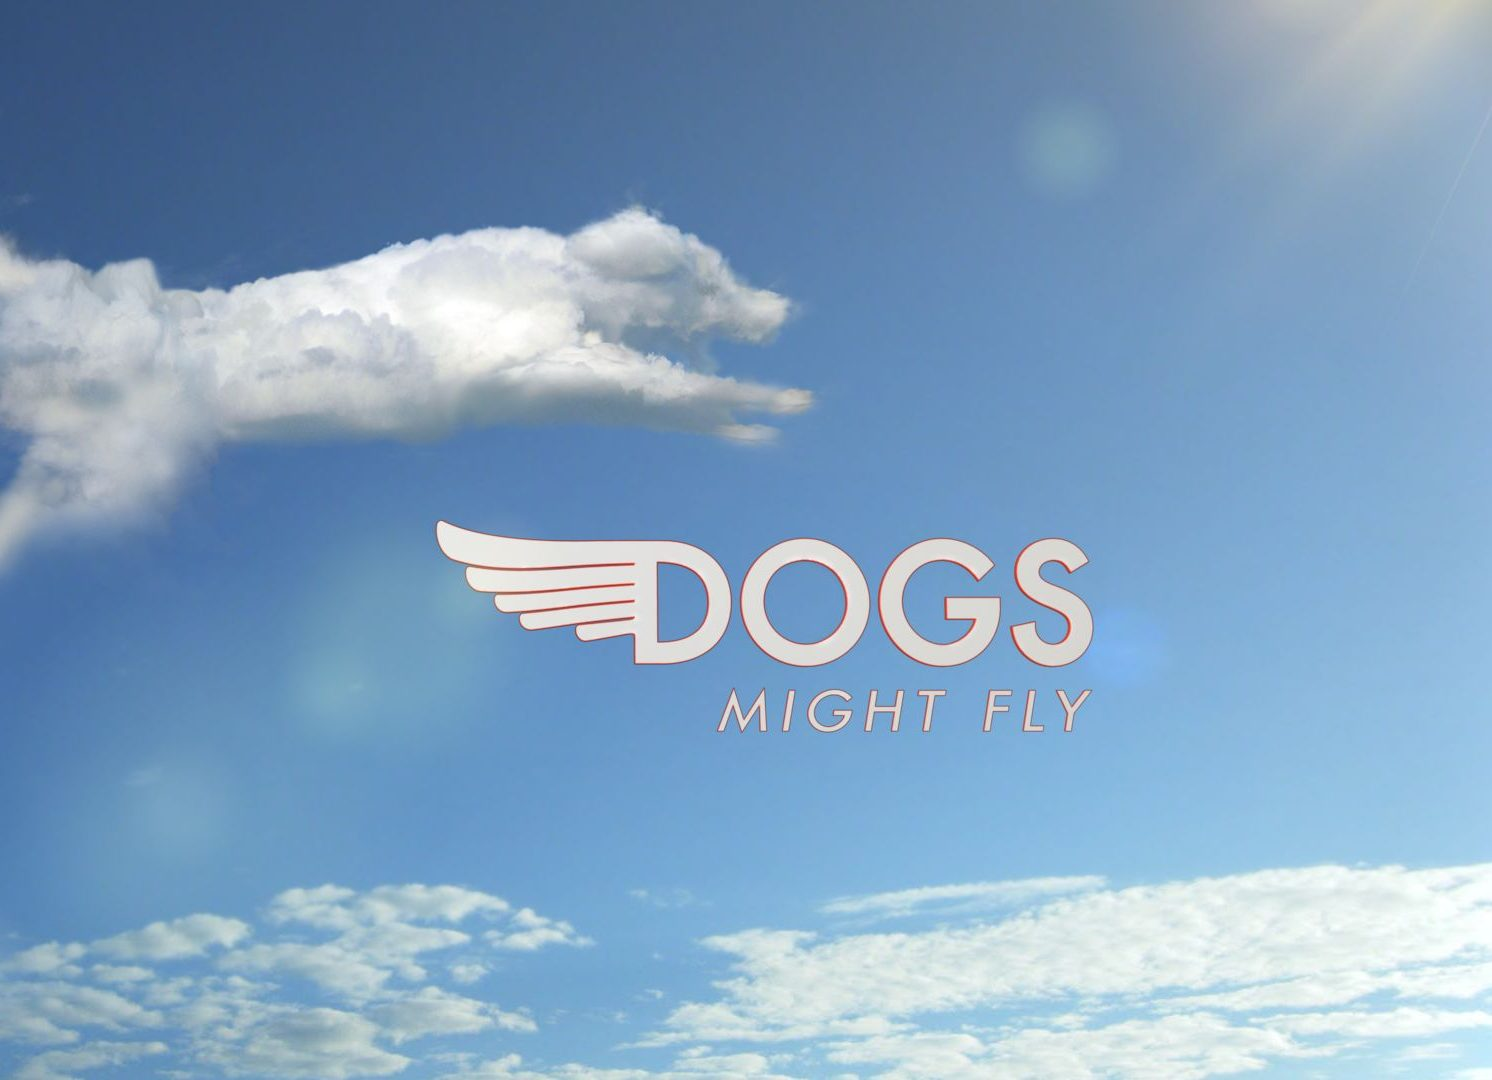 Dogs_Might_Fly_FullLogo